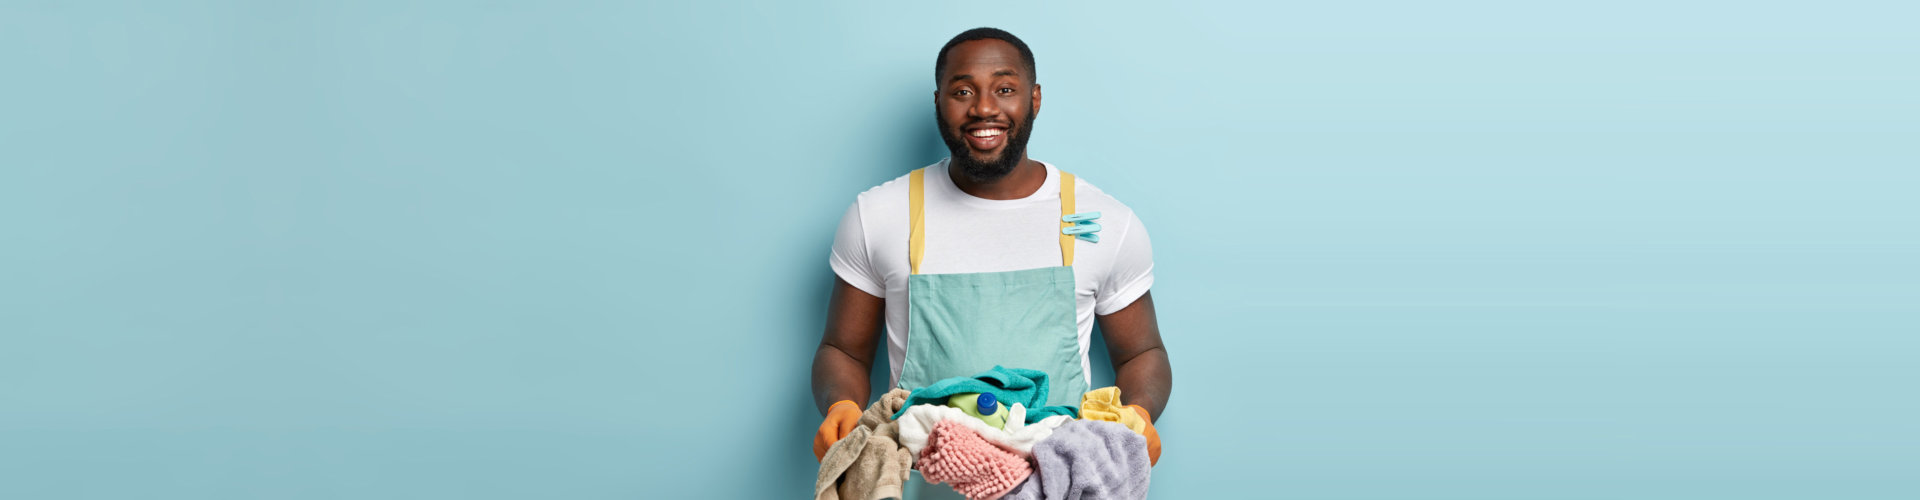 caregiver holding a basket of dirty clothes